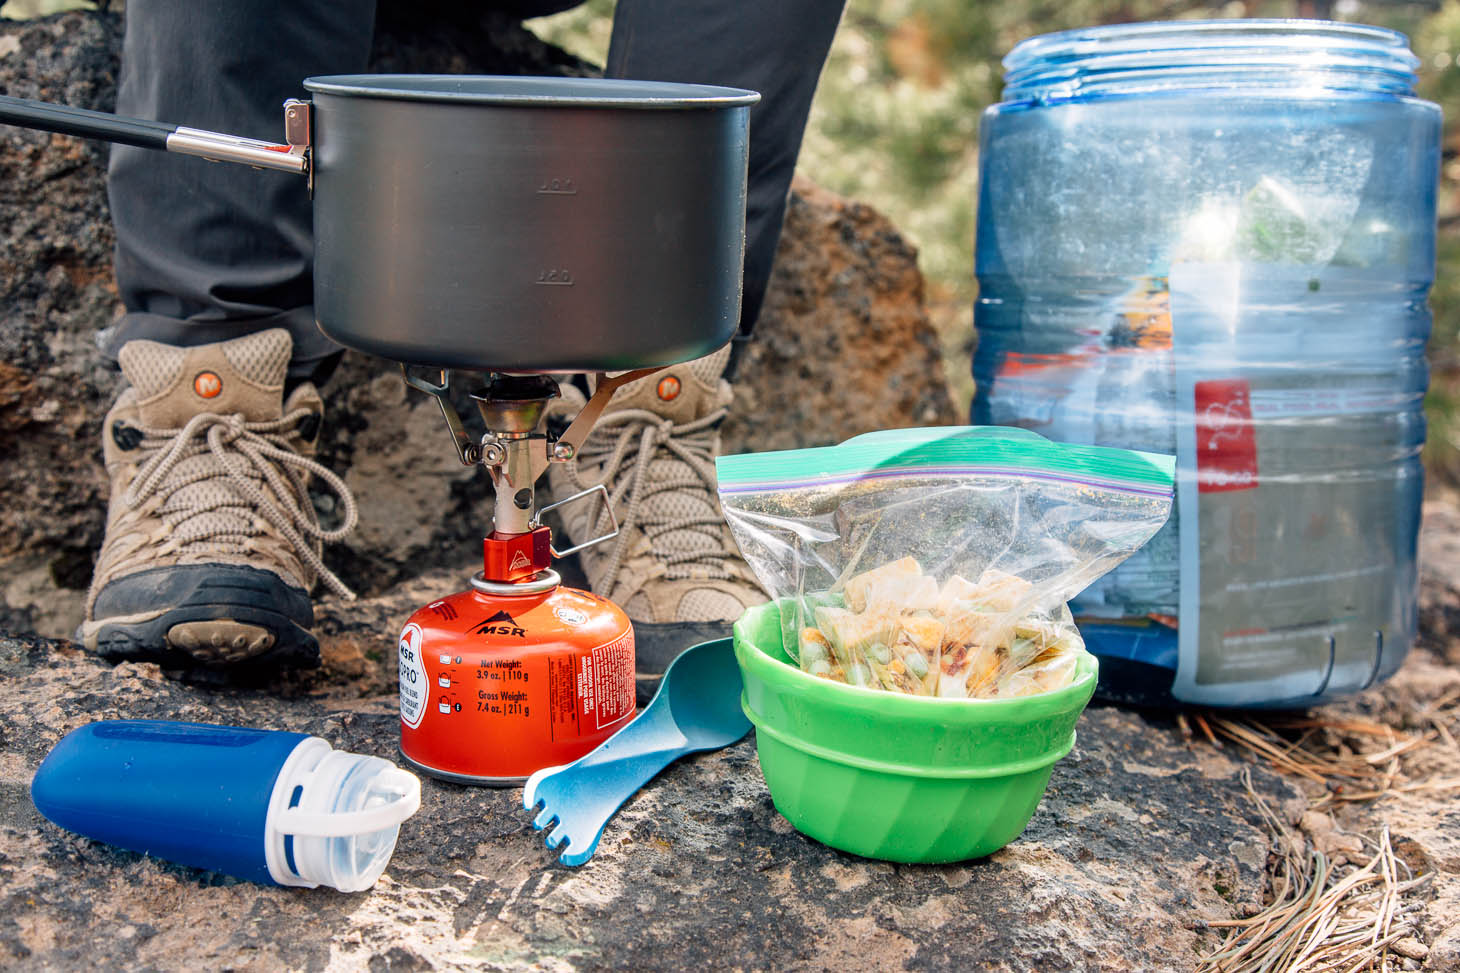 Ingredients and supplies to cook red curry rice while backpacking.